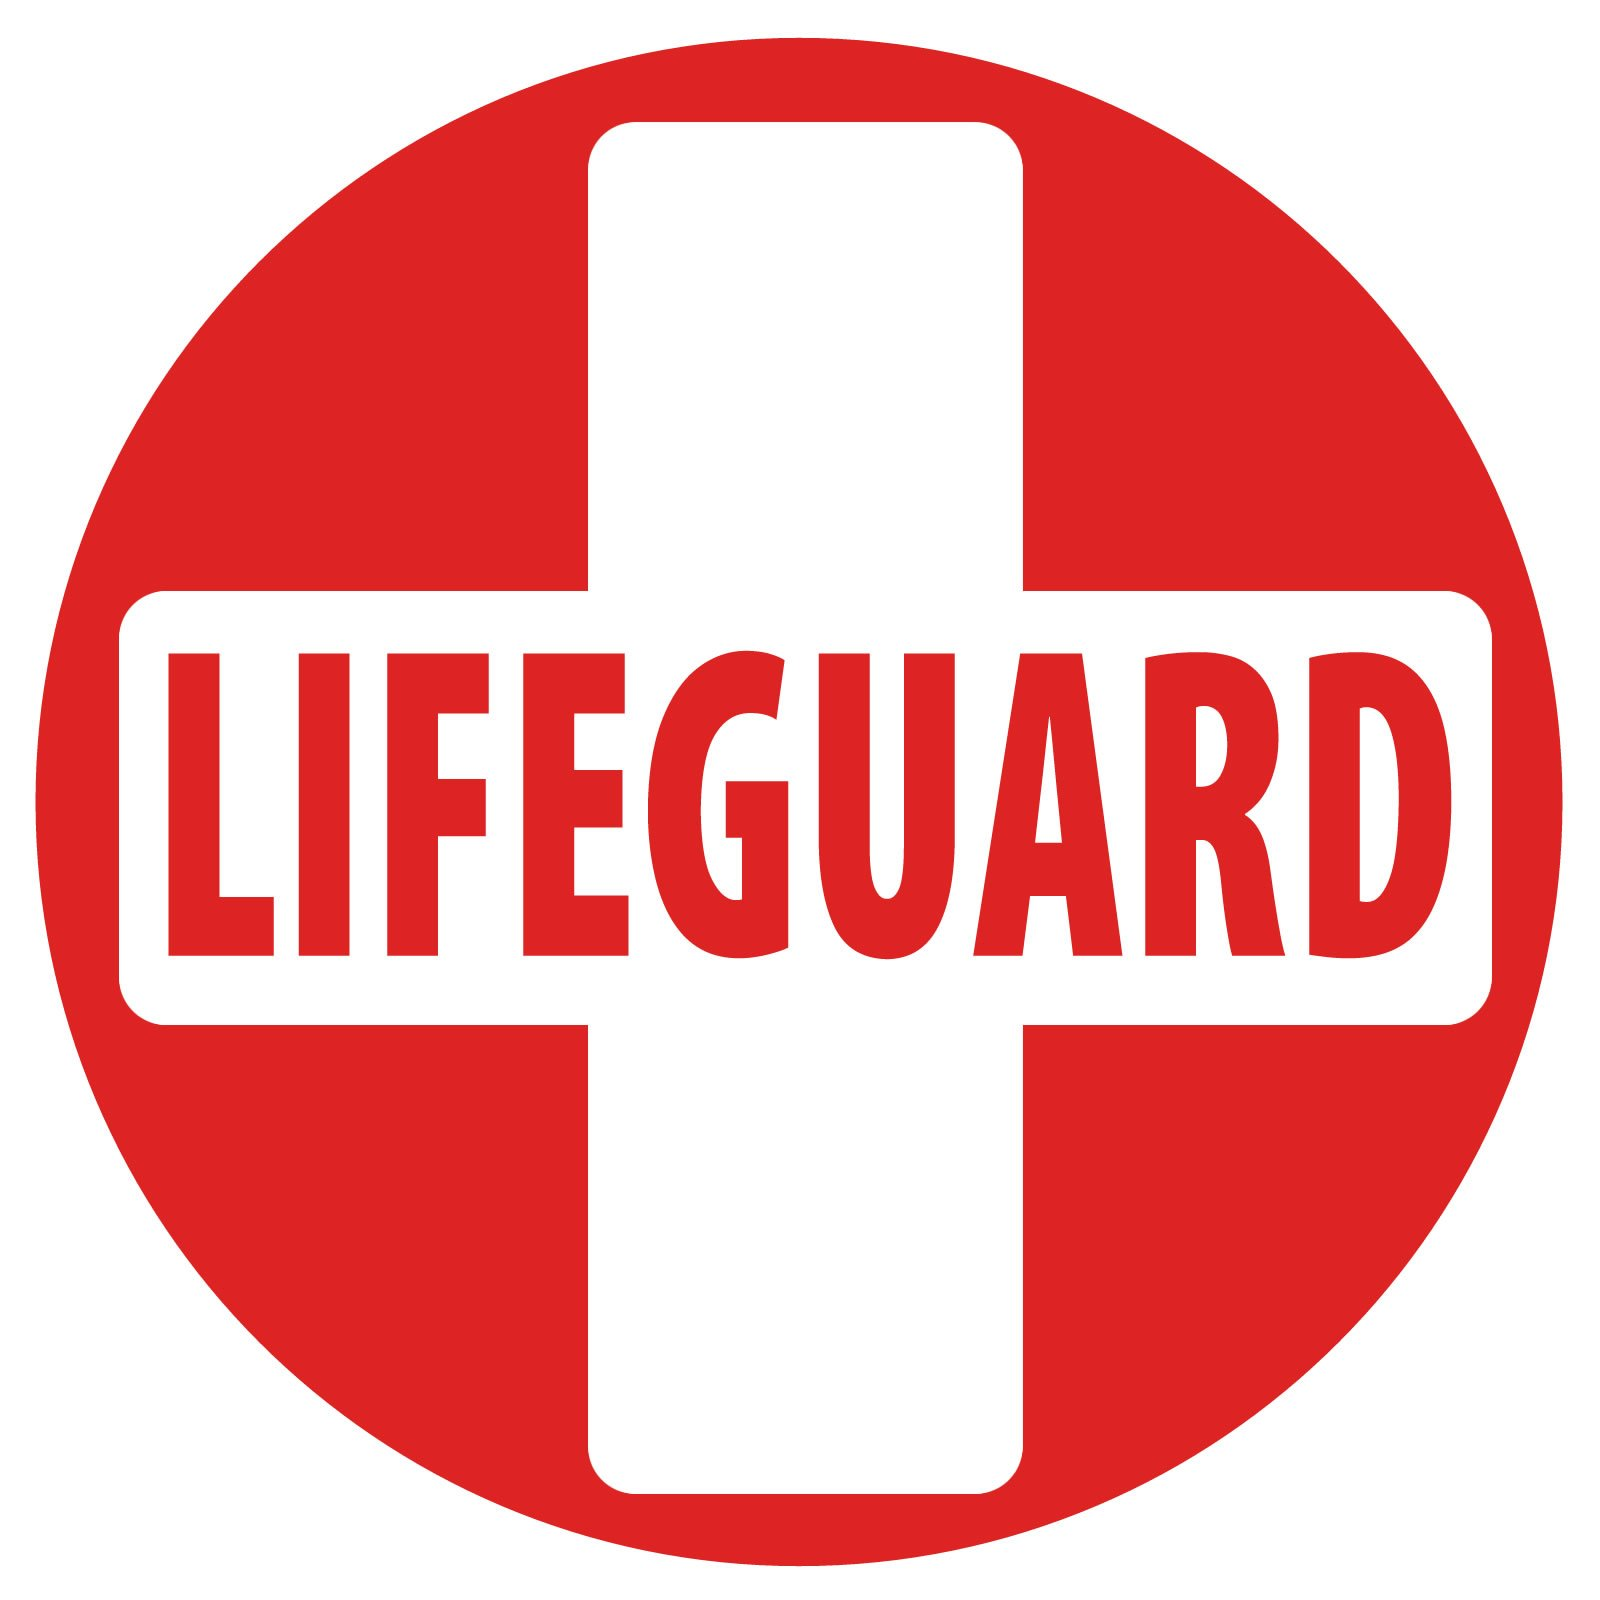 Free lifeguard clipart vector library library Lifeguard Logo Clip Art free image vector library library